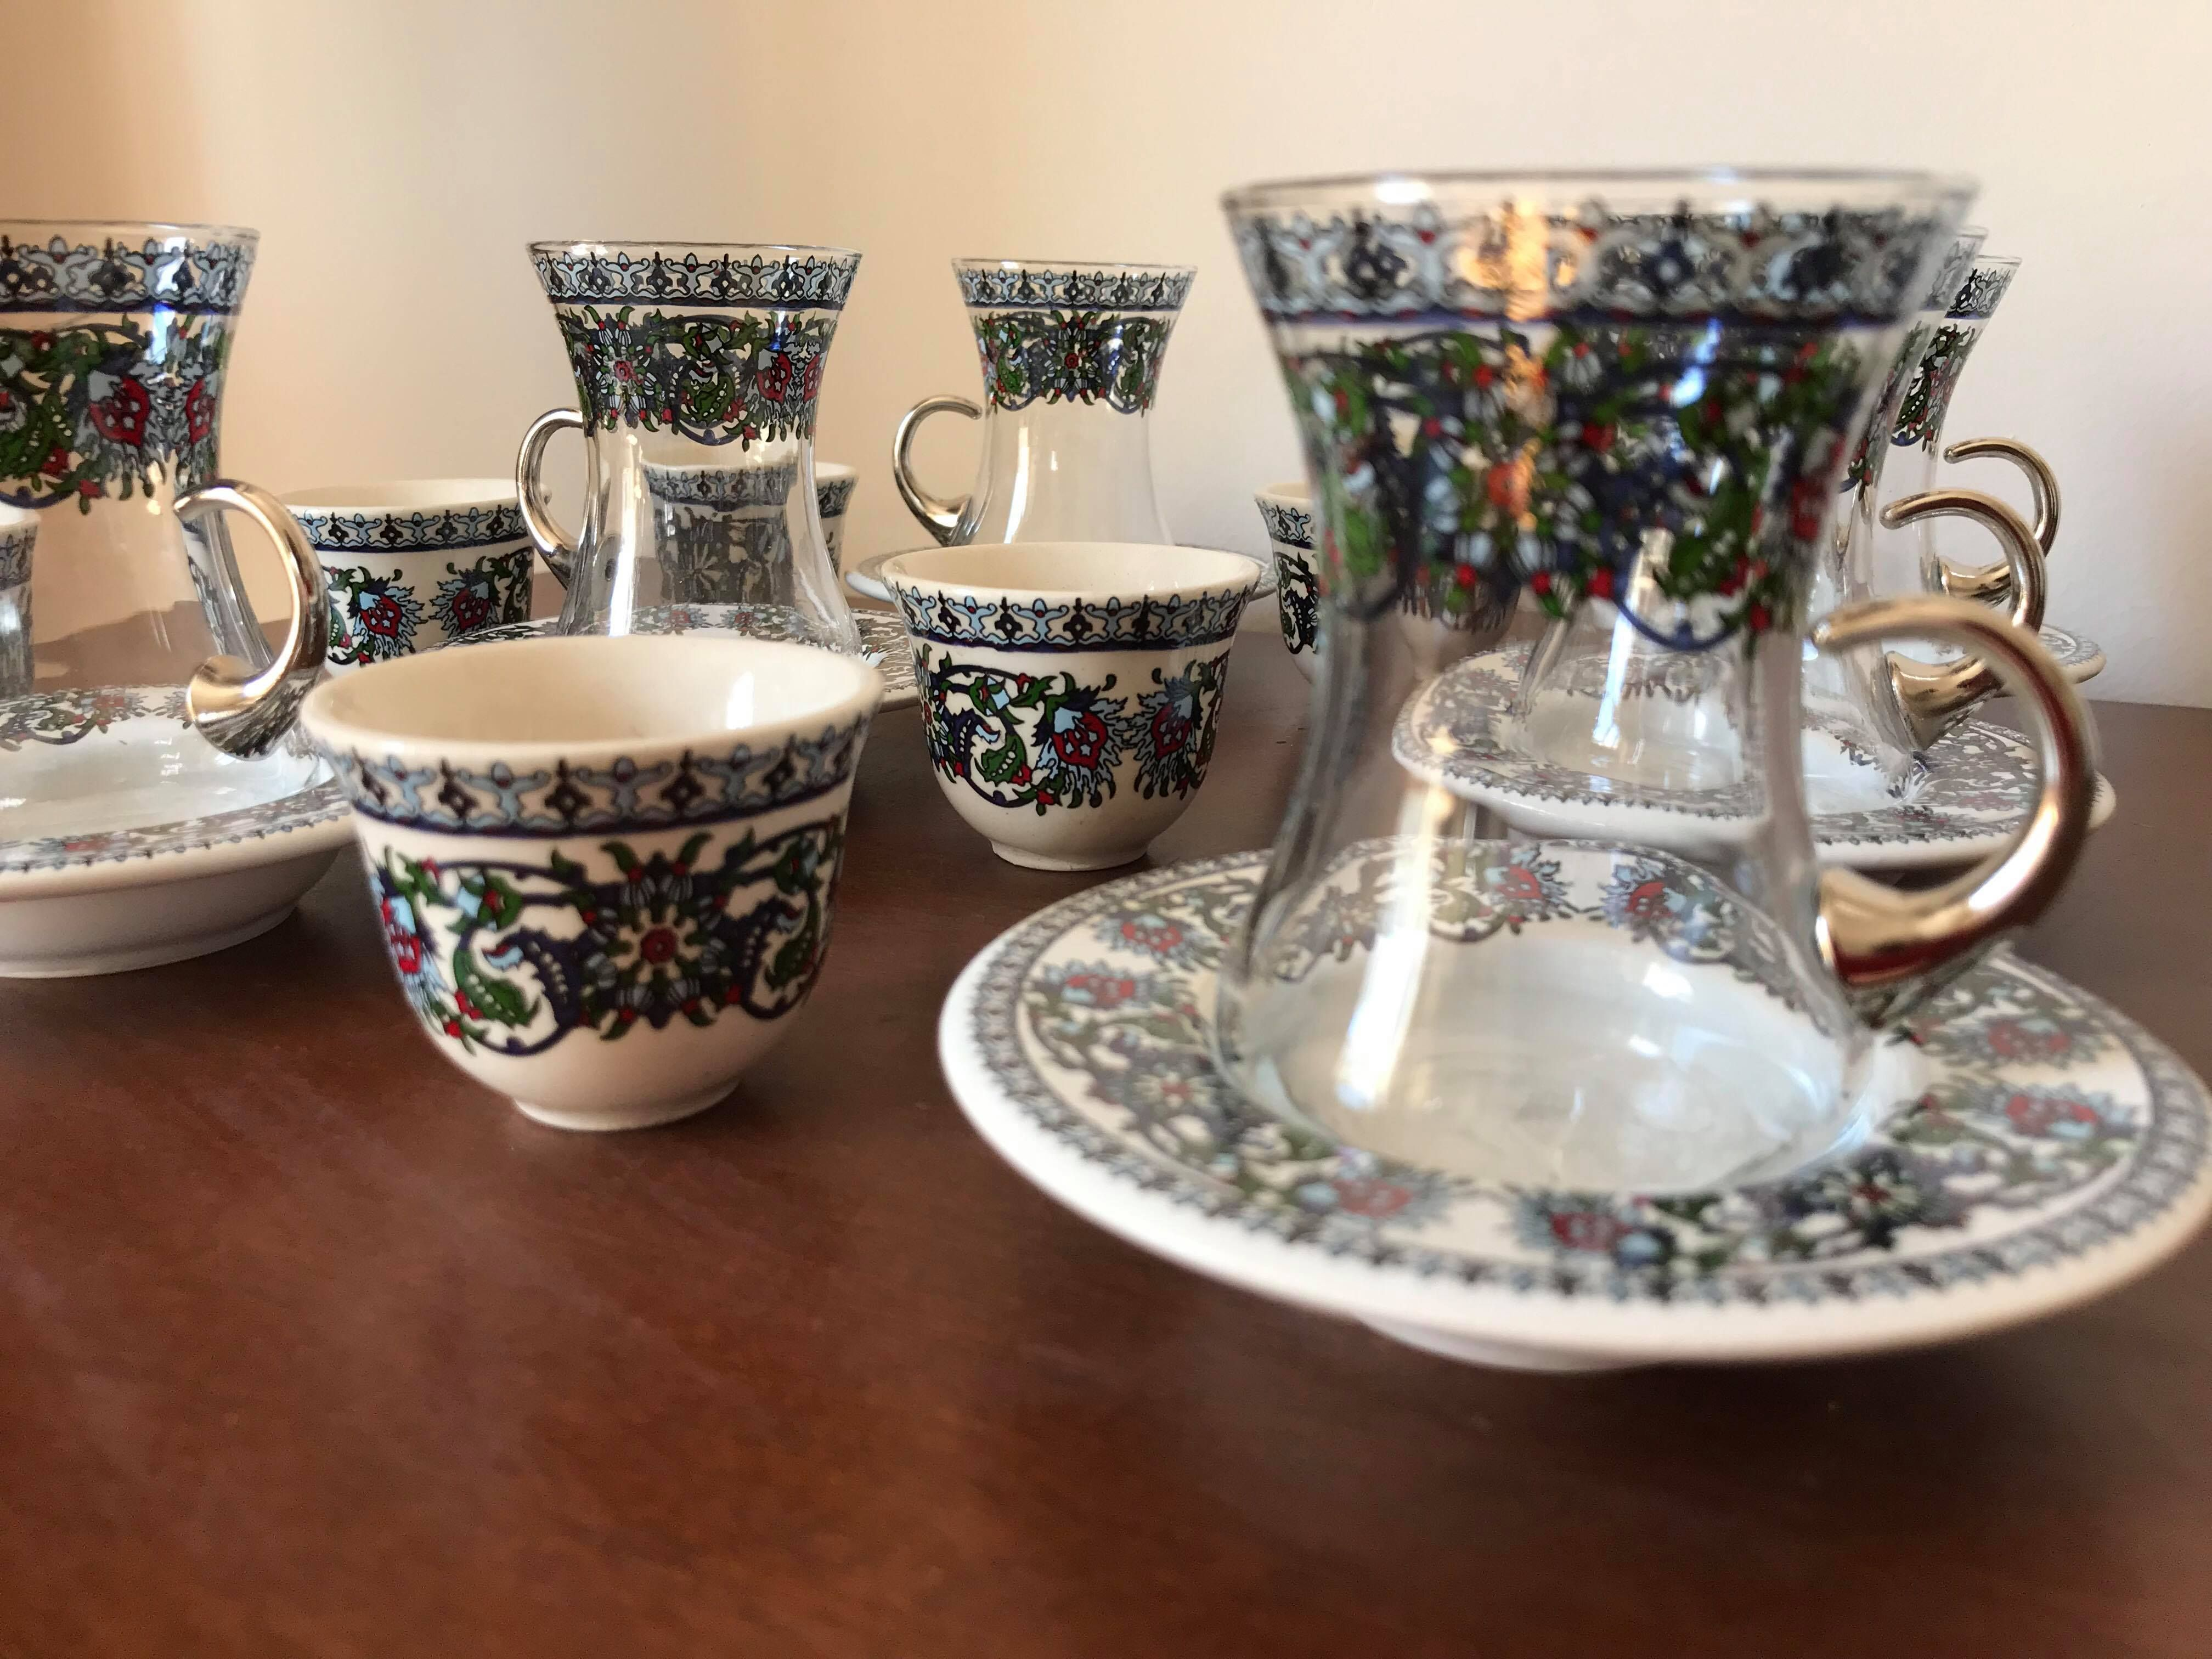 Details about Turkish Tea Coffee Set (of 6) Porcelain Cups